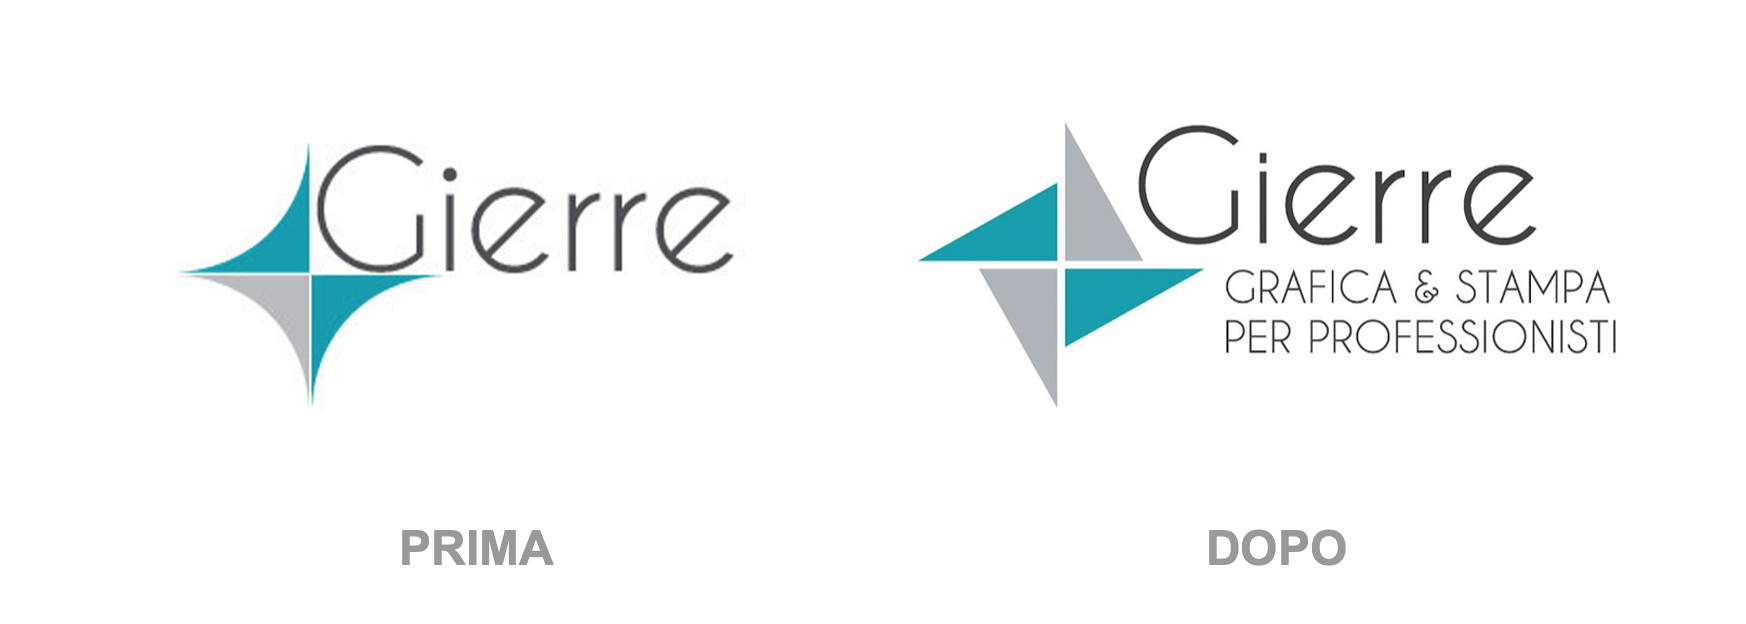 gierre restyling logo